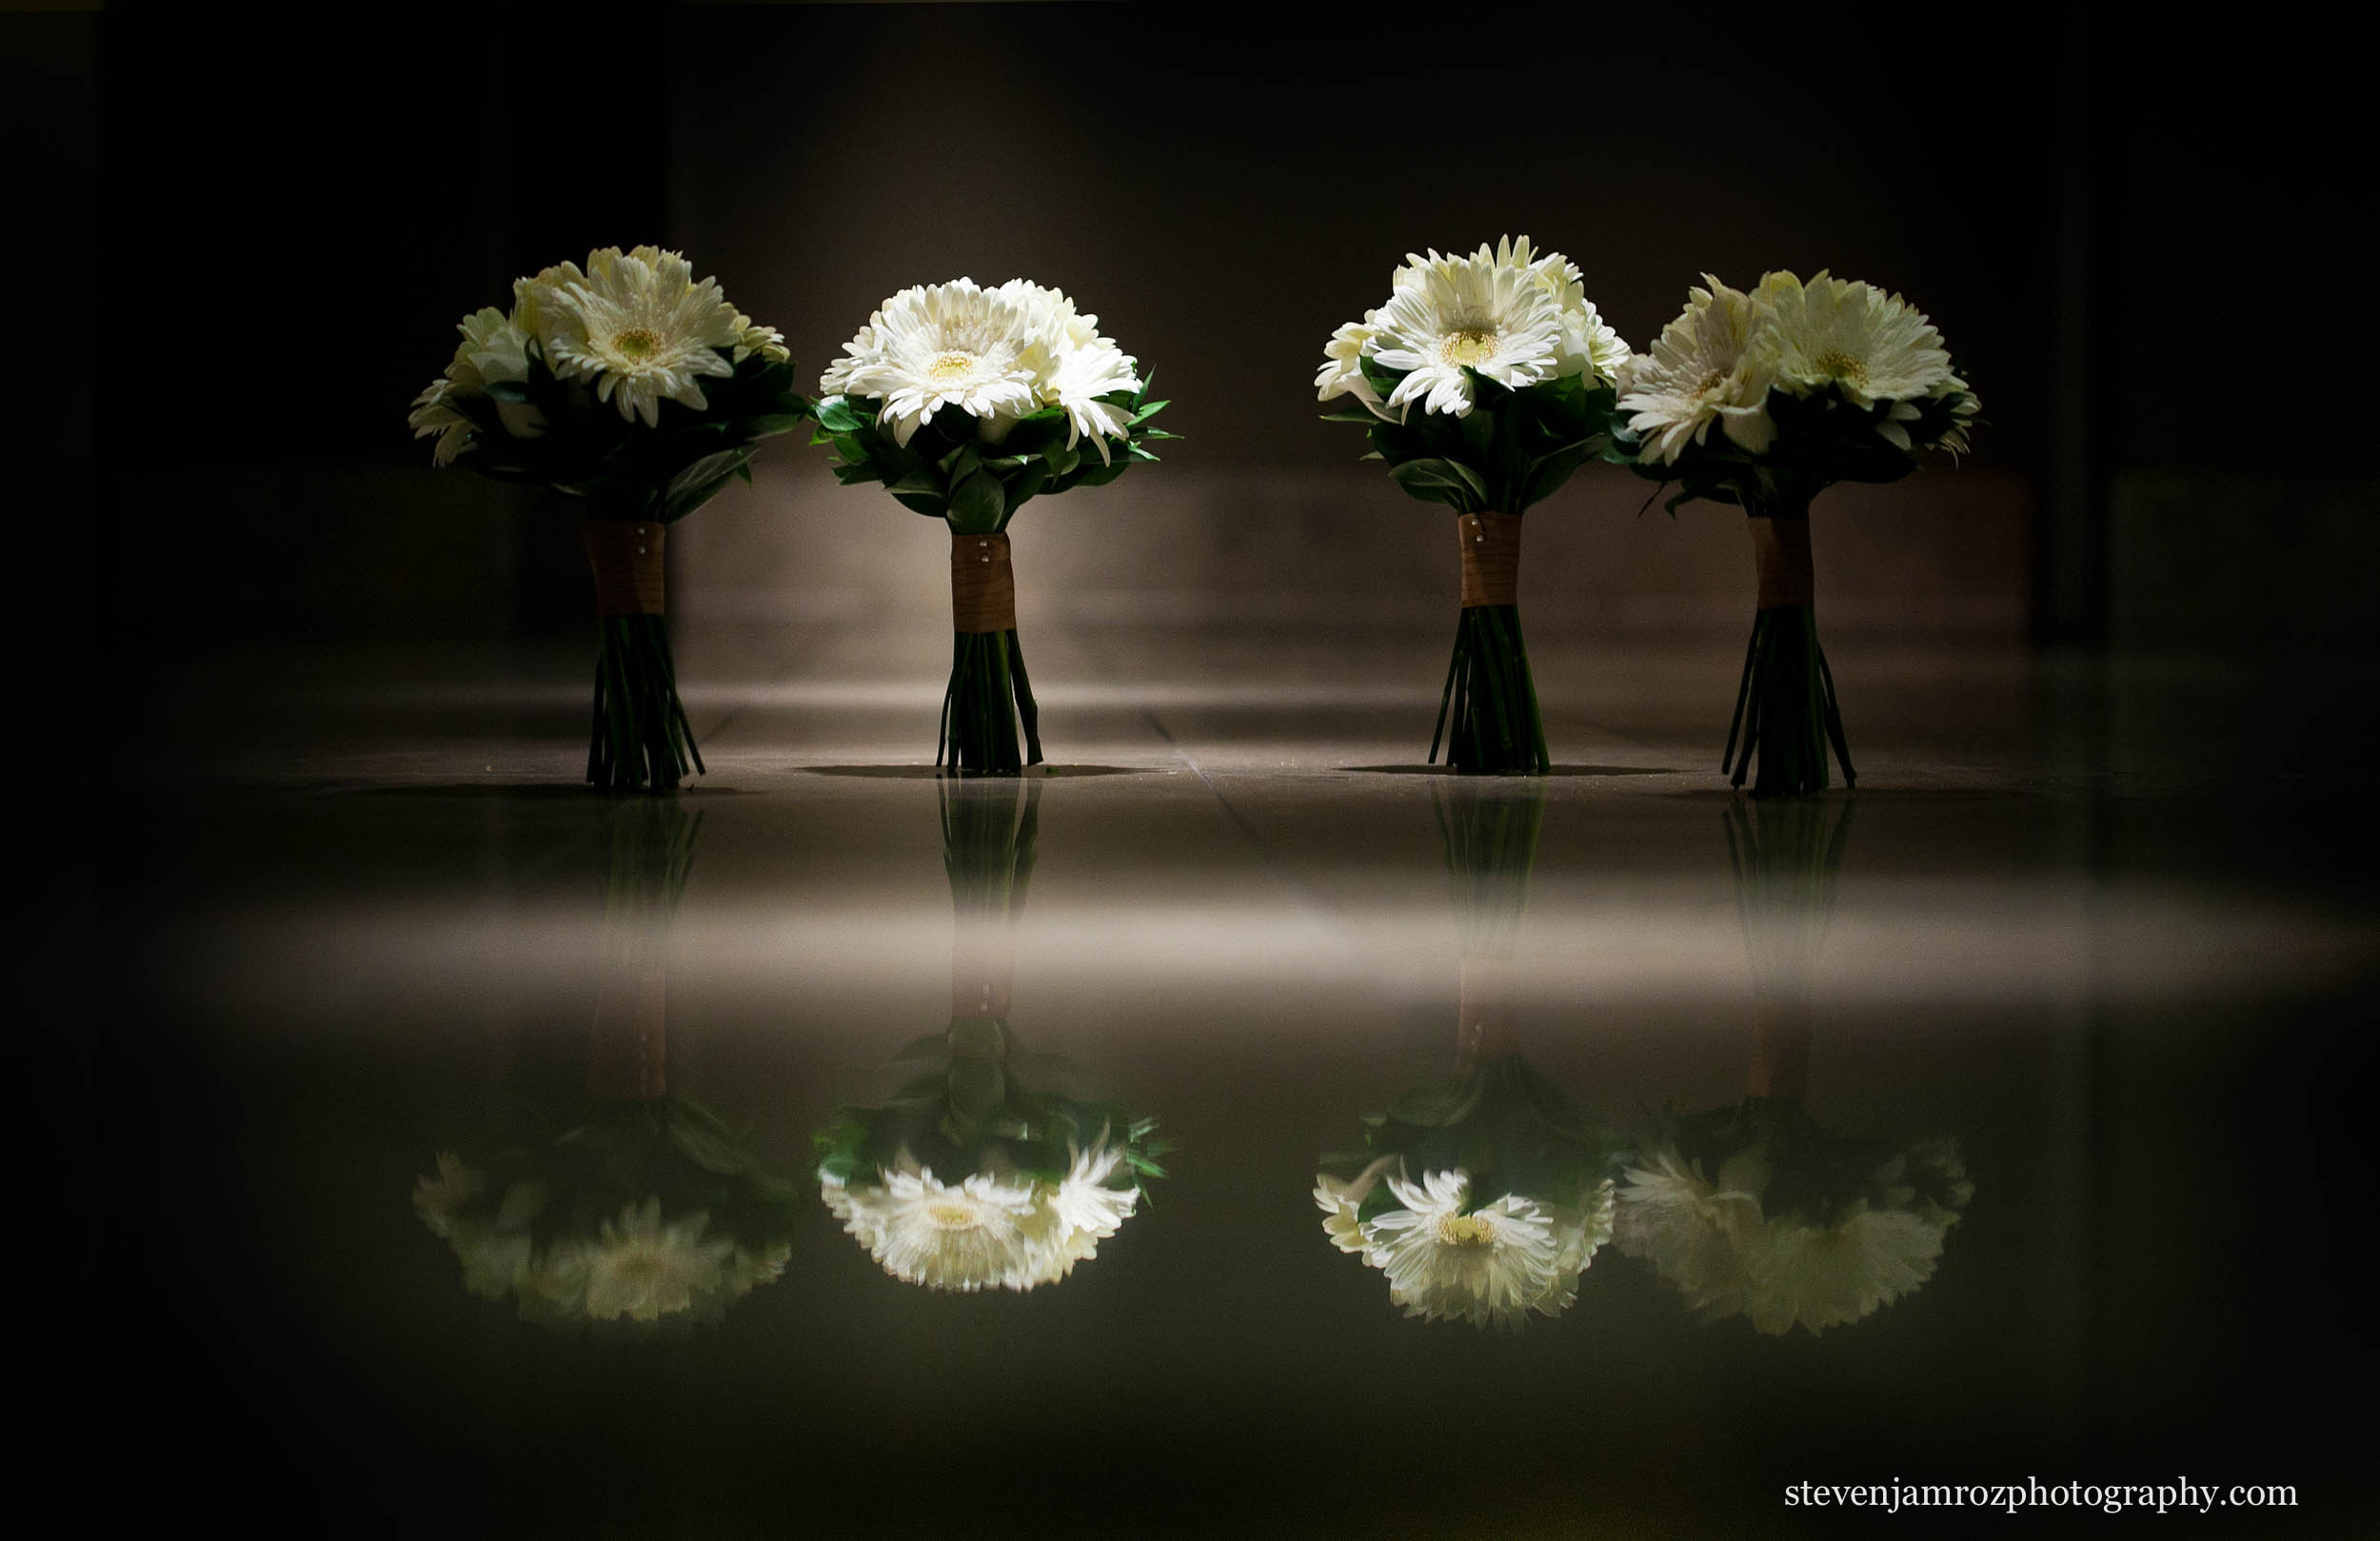 reflection-of-wedding-flowers-raleigh-photographer-0810.jpg